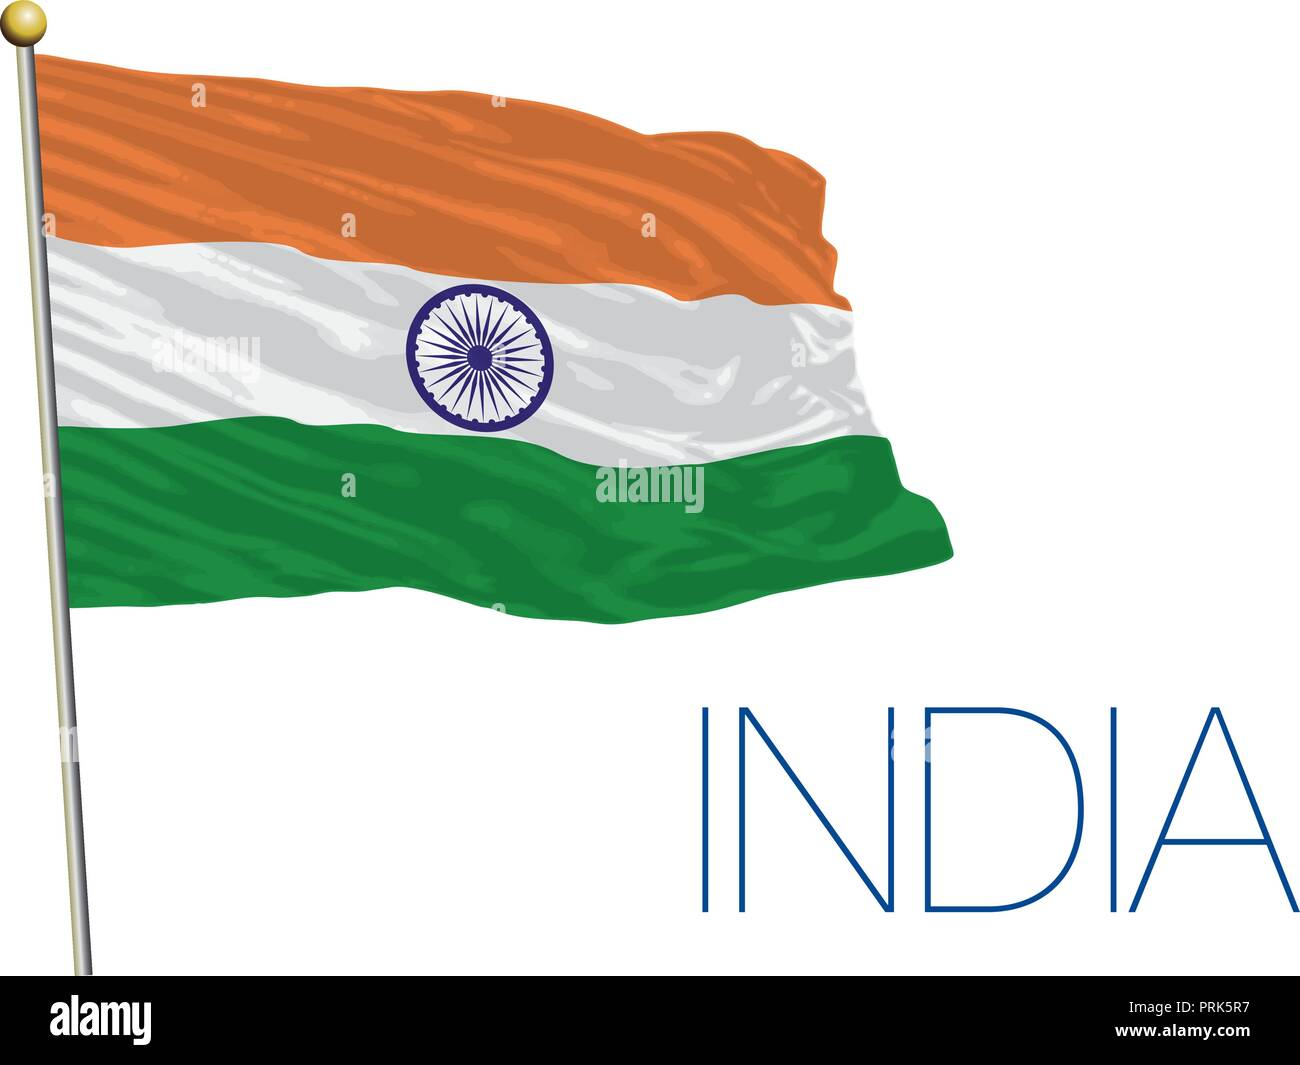 India official flag, vector illustration - Stock Vector